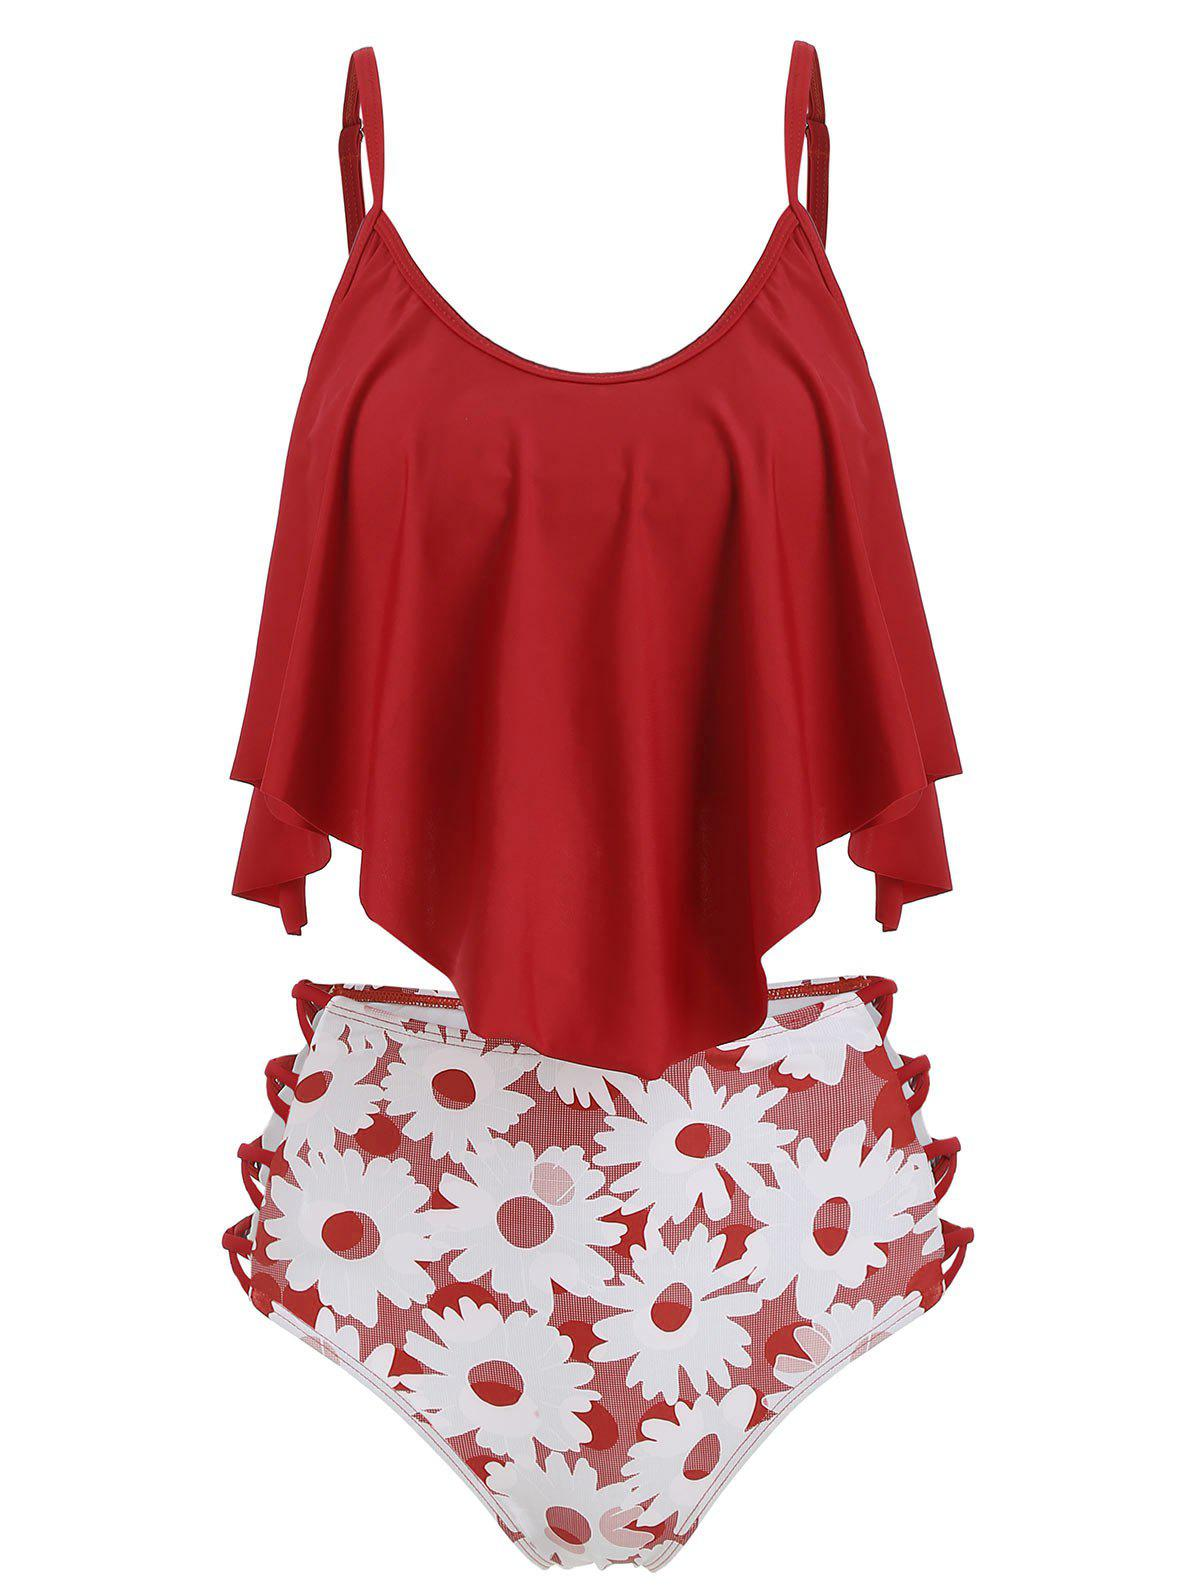 Floral Lattice Flounce Tankini Swimsuit - RED S